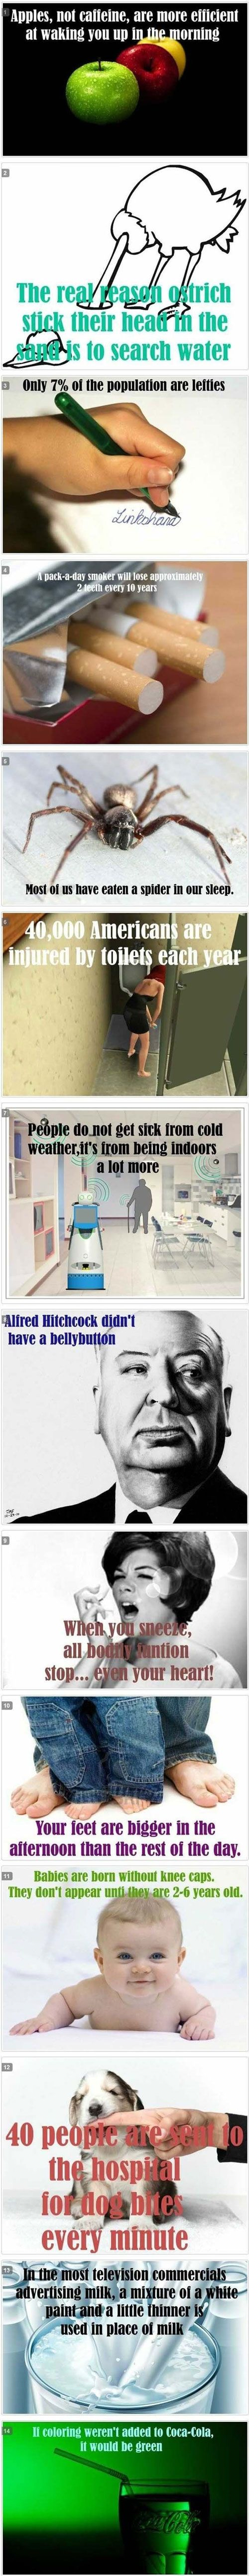 correction: Alfred Hitchcock surgically removed his belly button just to be different.